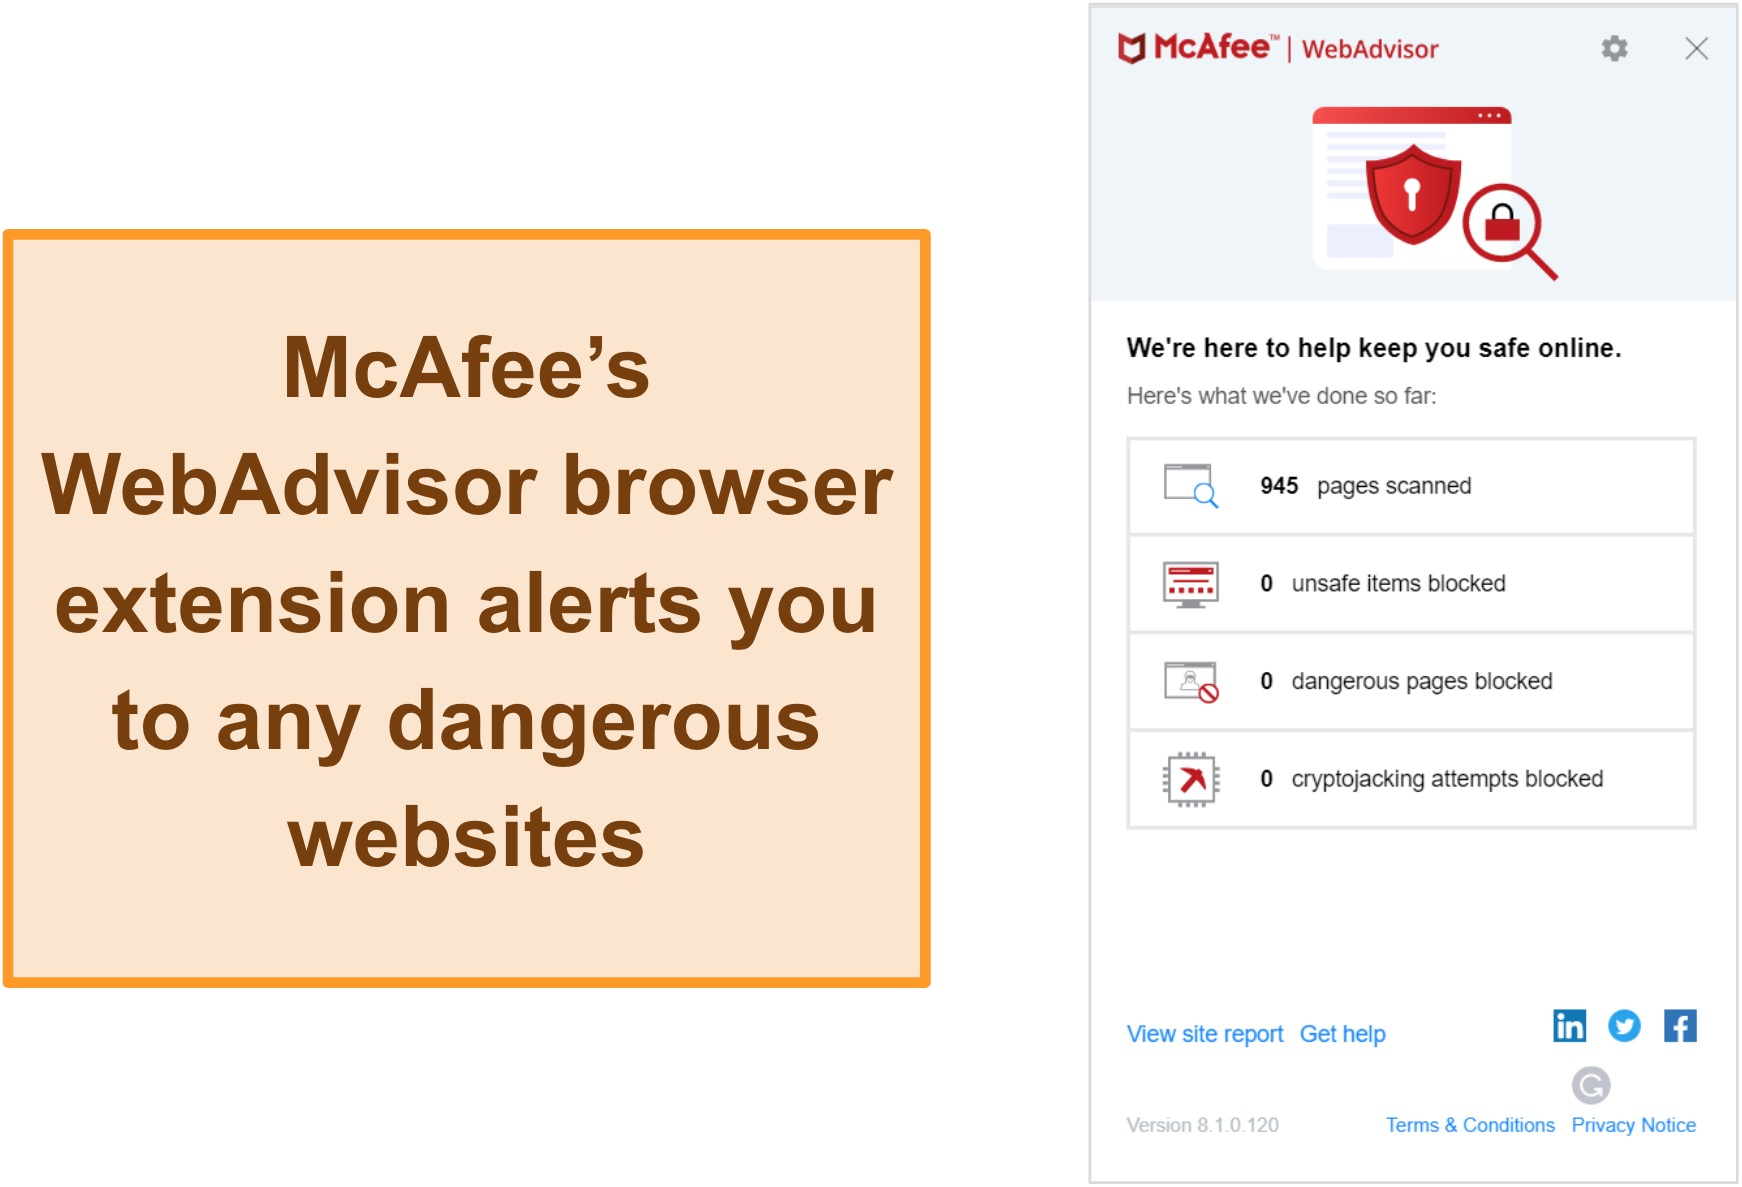 Screenshot of WebAdvisor feature on McAfee website